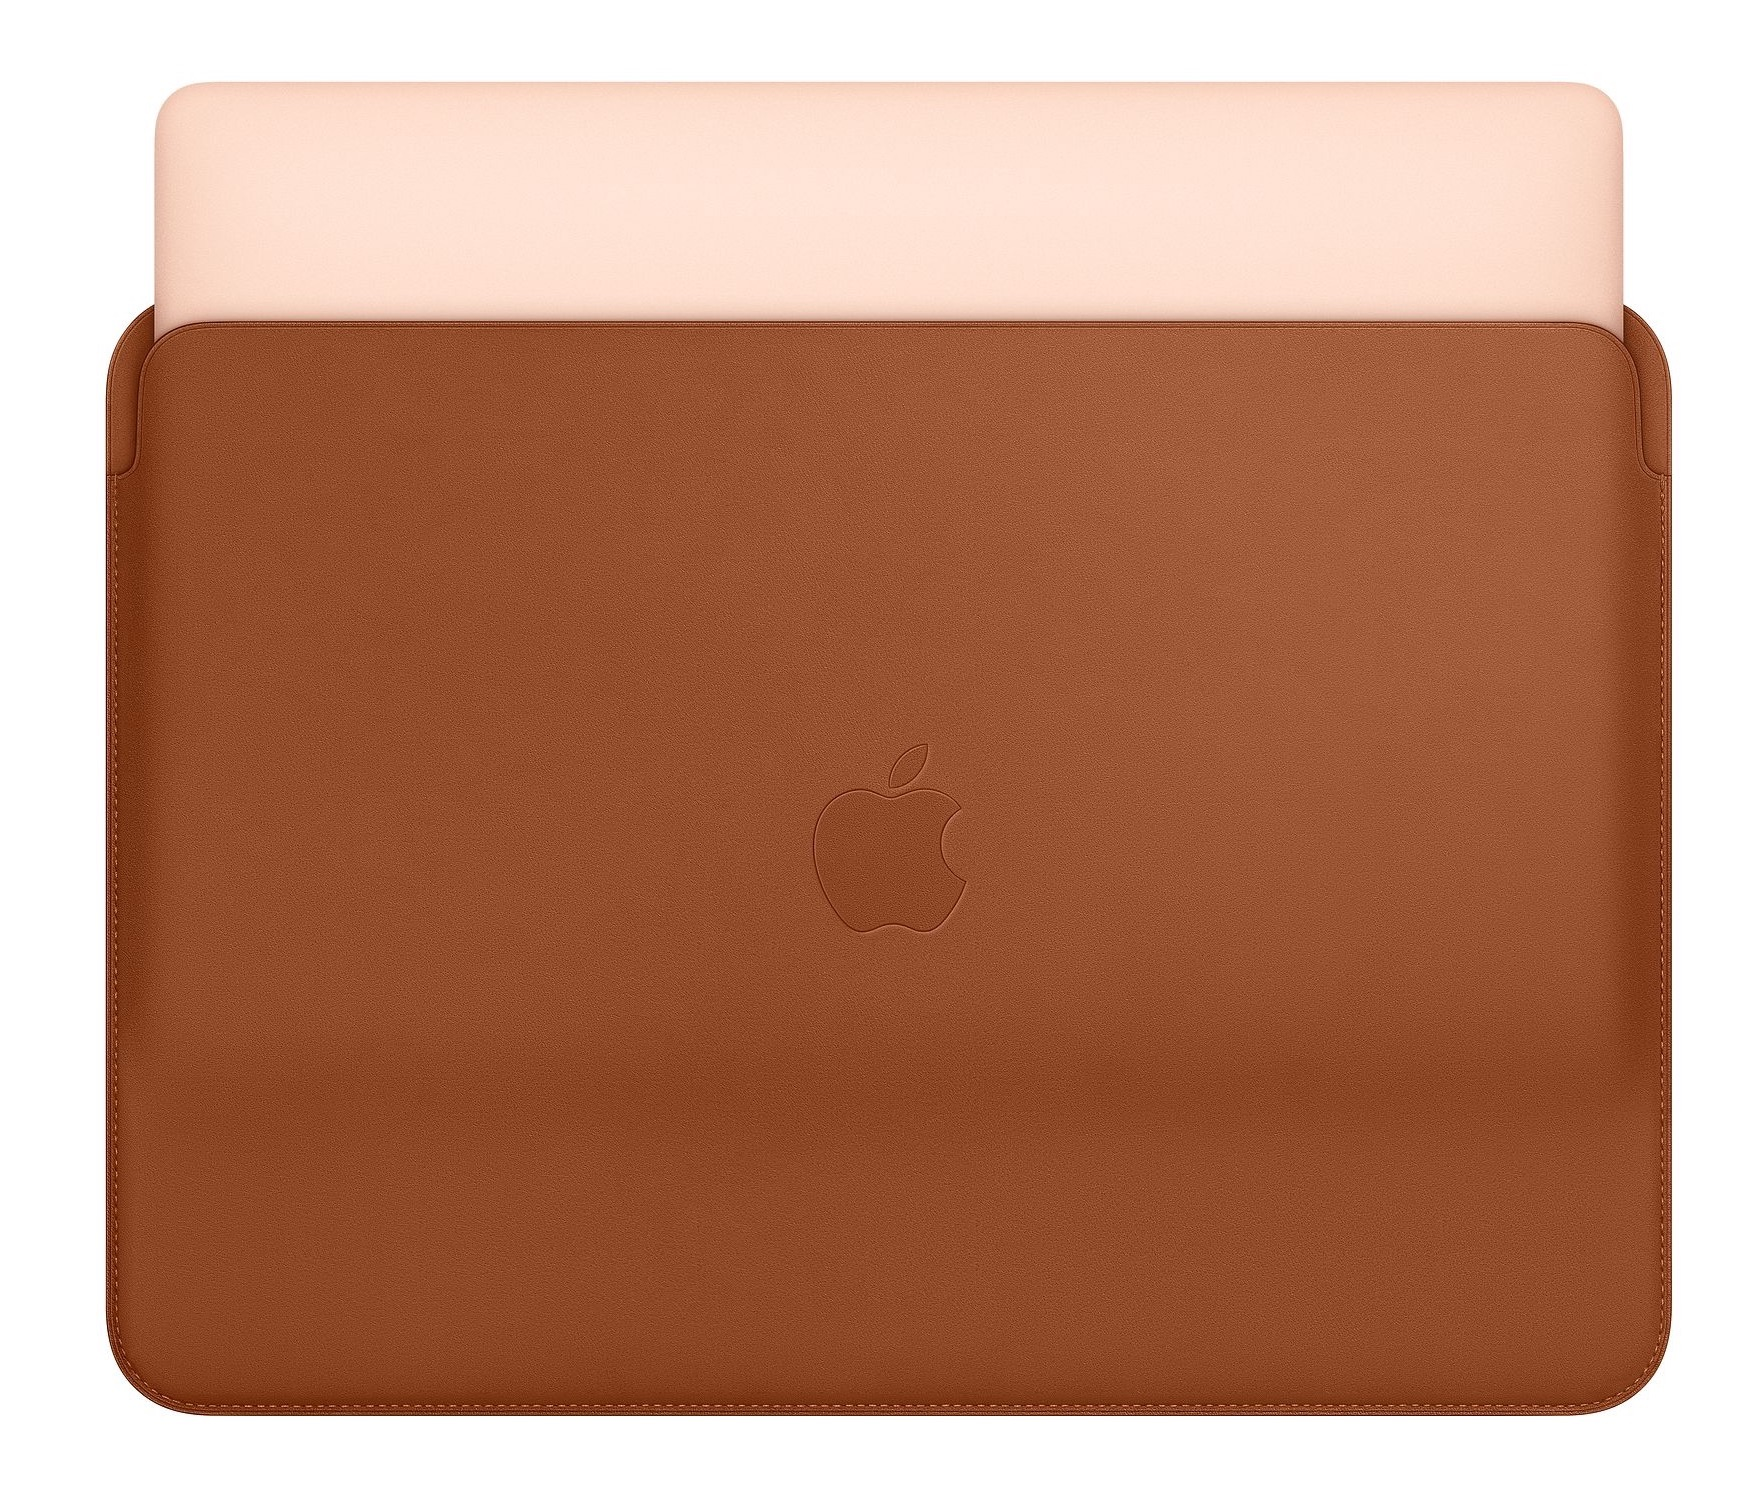 Apple Leren Sleeve voor MacBook Air.